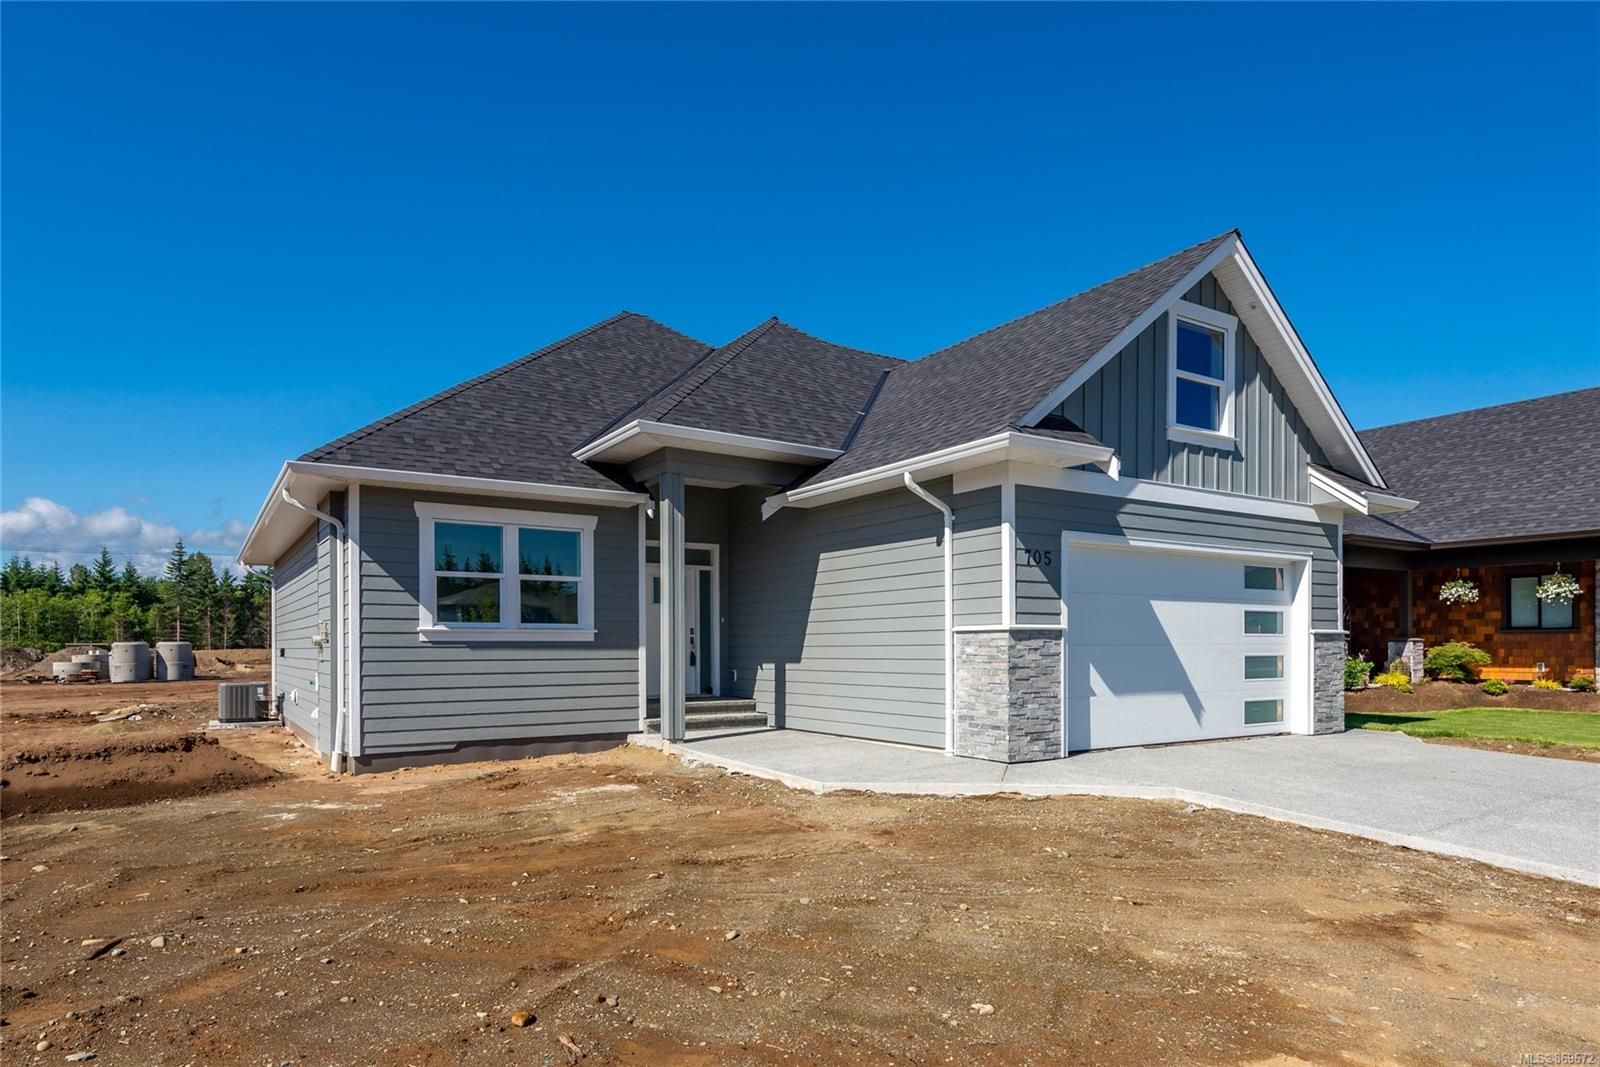 Main Photo: 705 Sitka St in : CR Willow Point House for sale (Campbell River)  : MLS®# 869672